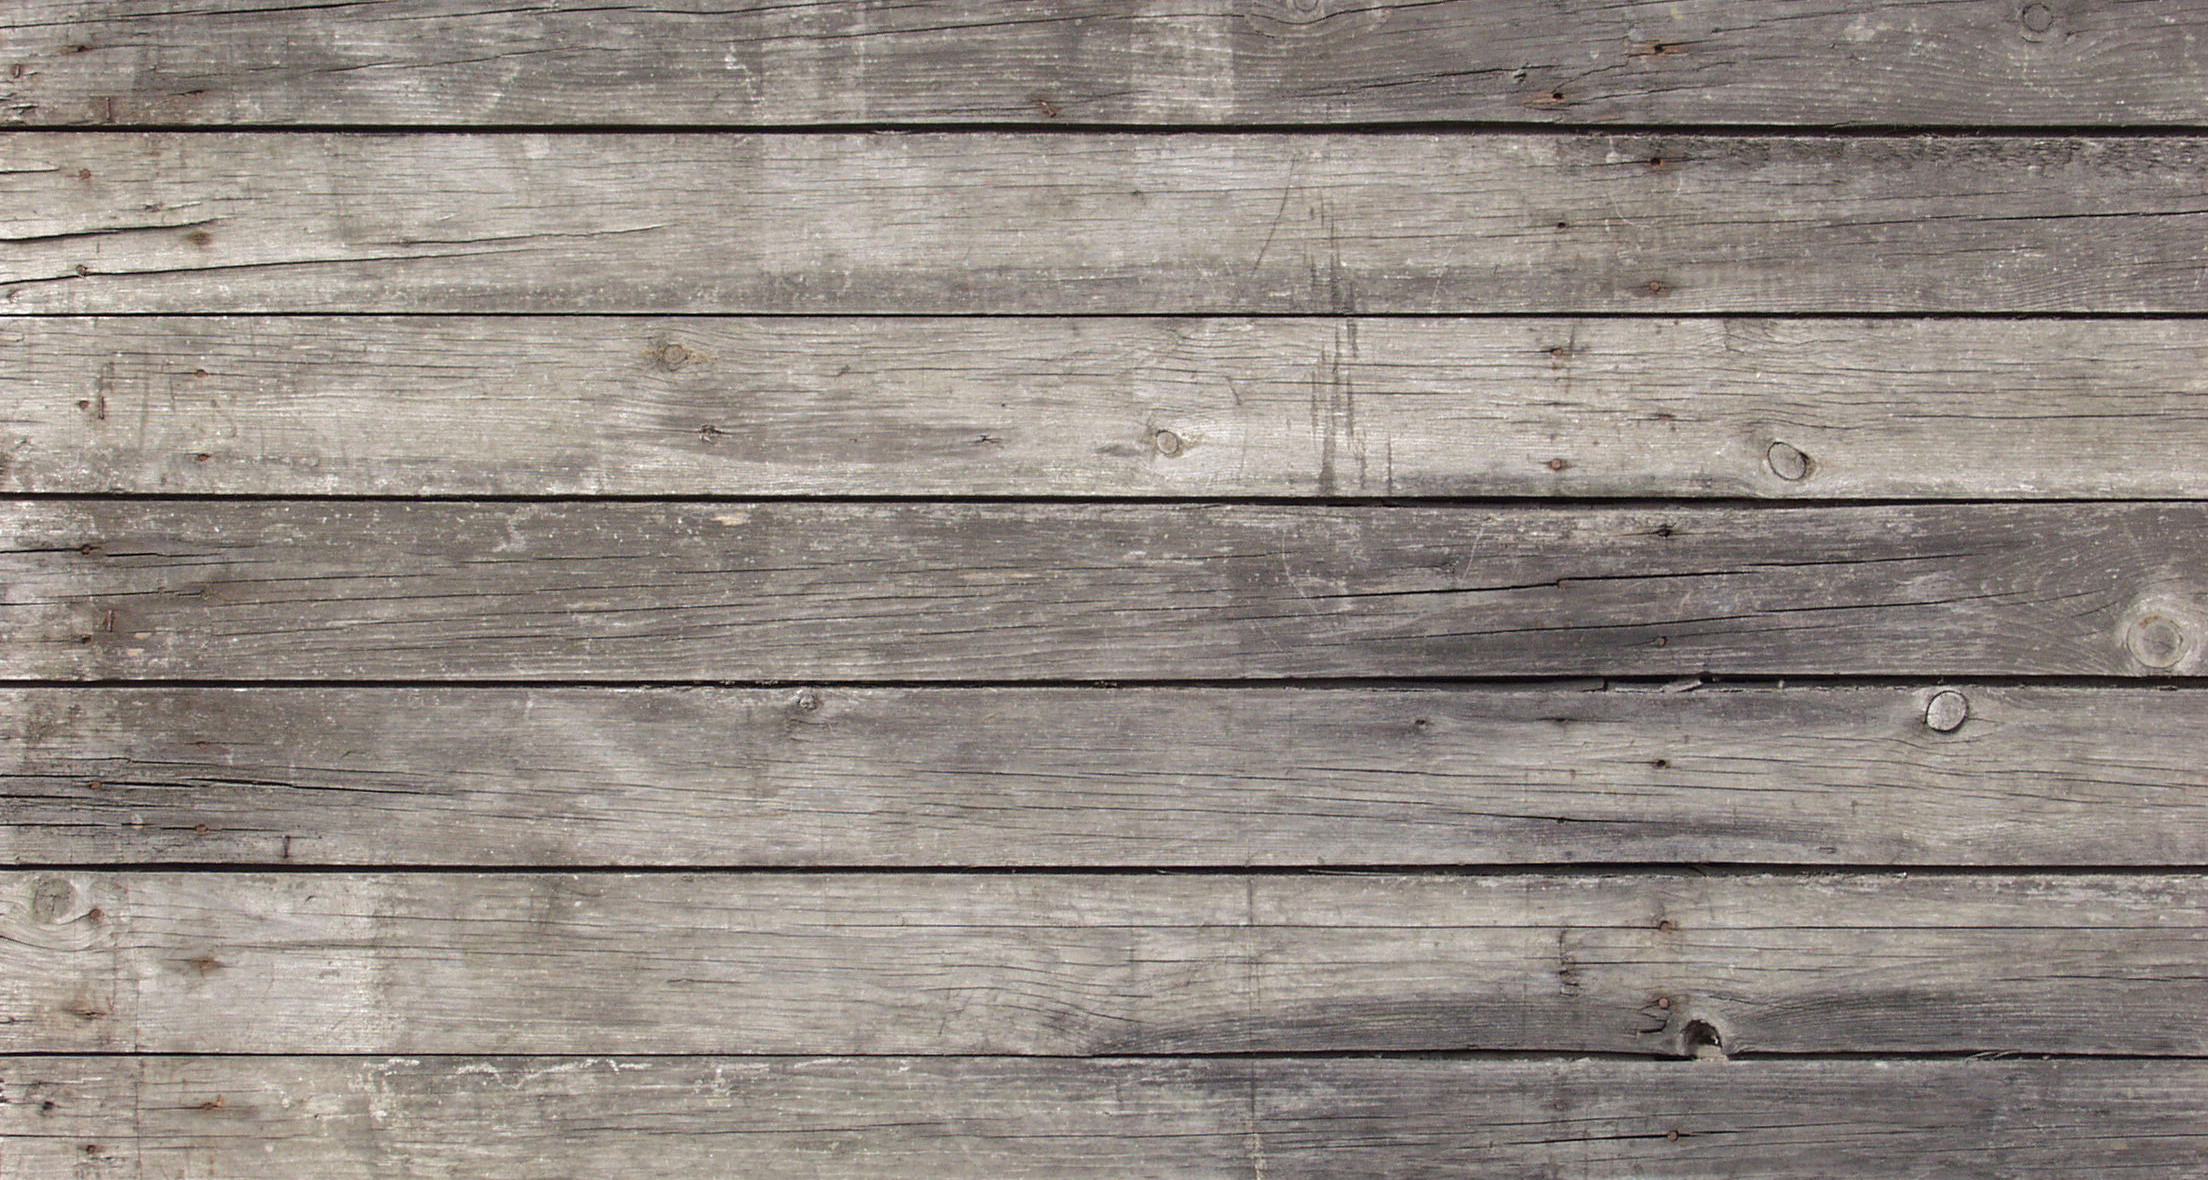 2208x1180 Wood Texture Wallpaper Collection for Android